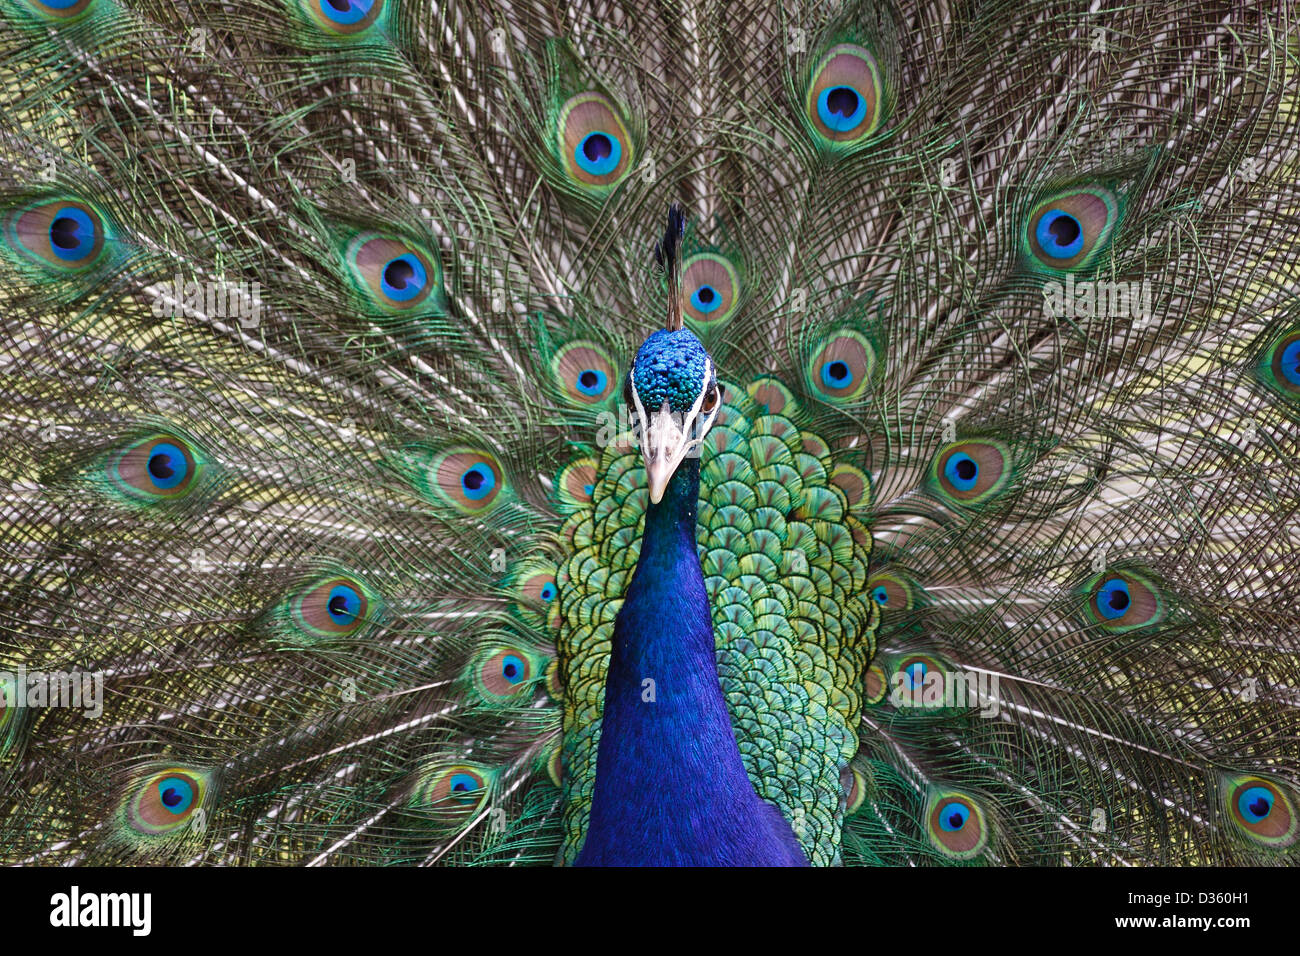 Male Peacock - Stock Image